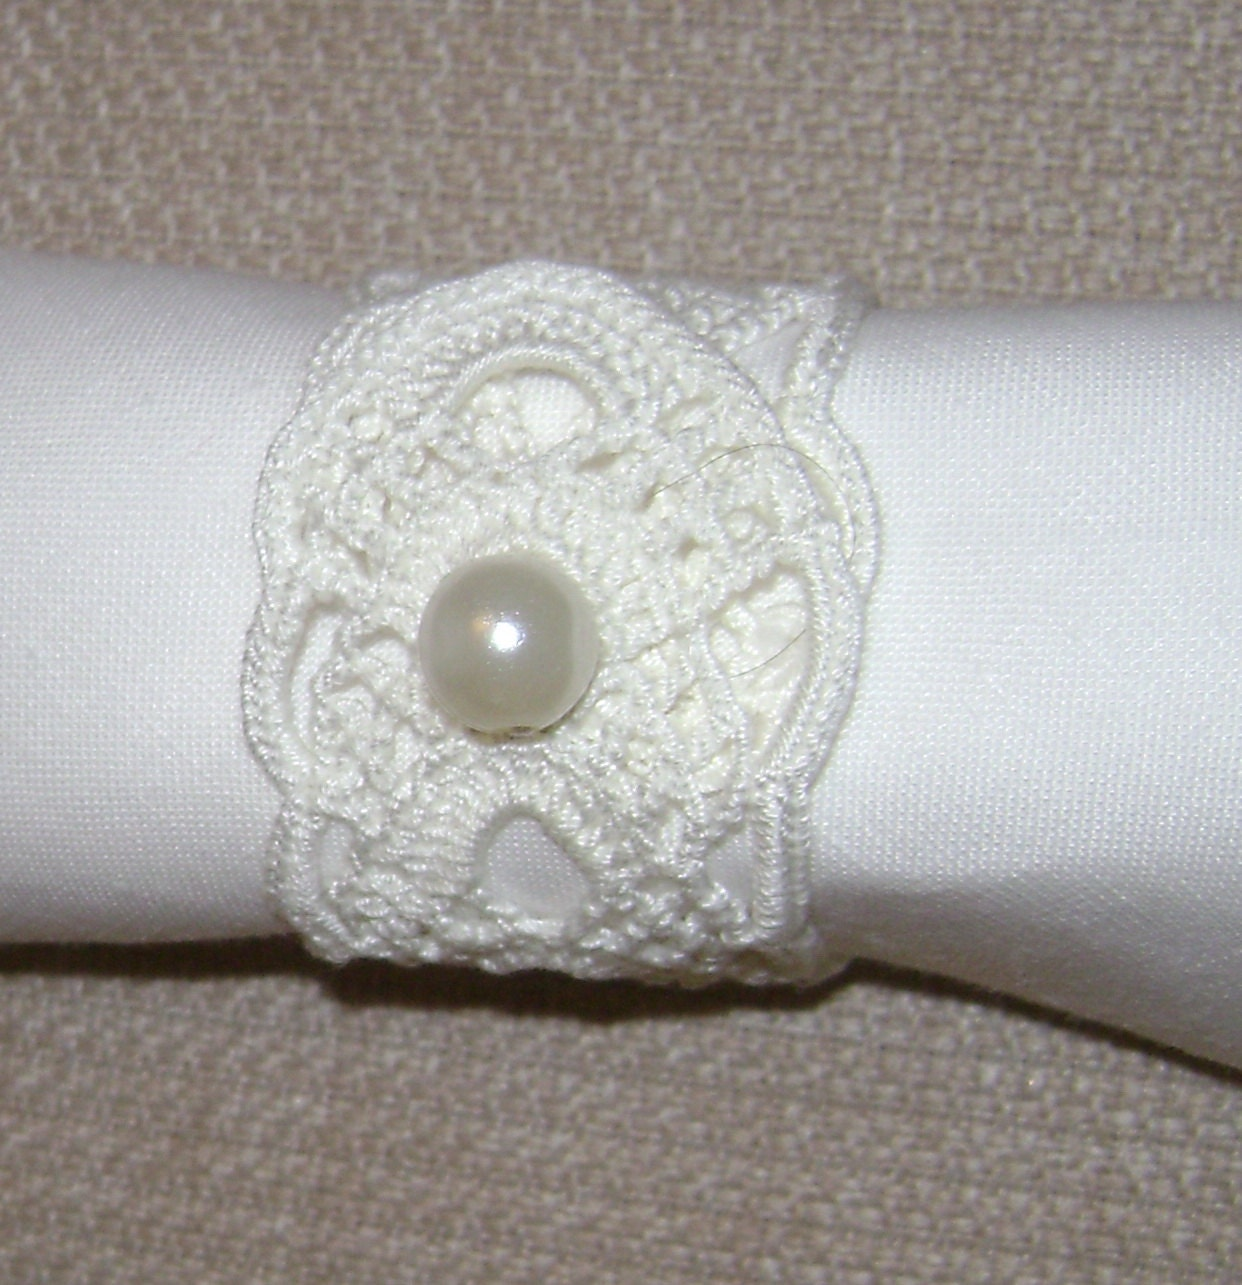 crochet napkin rings 12 pieces white. Black Bedroom Furniture Sets. Home Design Ideas